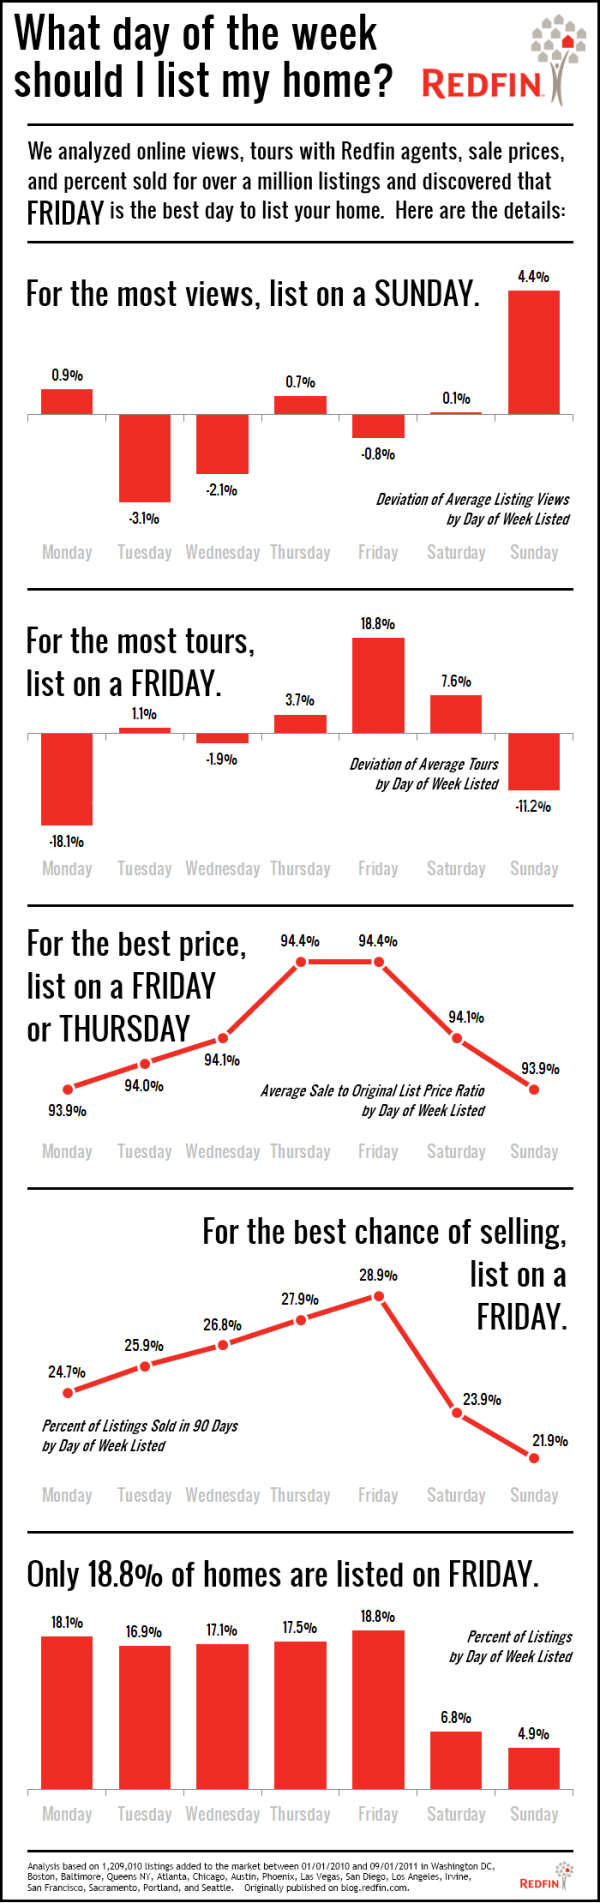 Redfin Blog: What day of the week should I list my home?